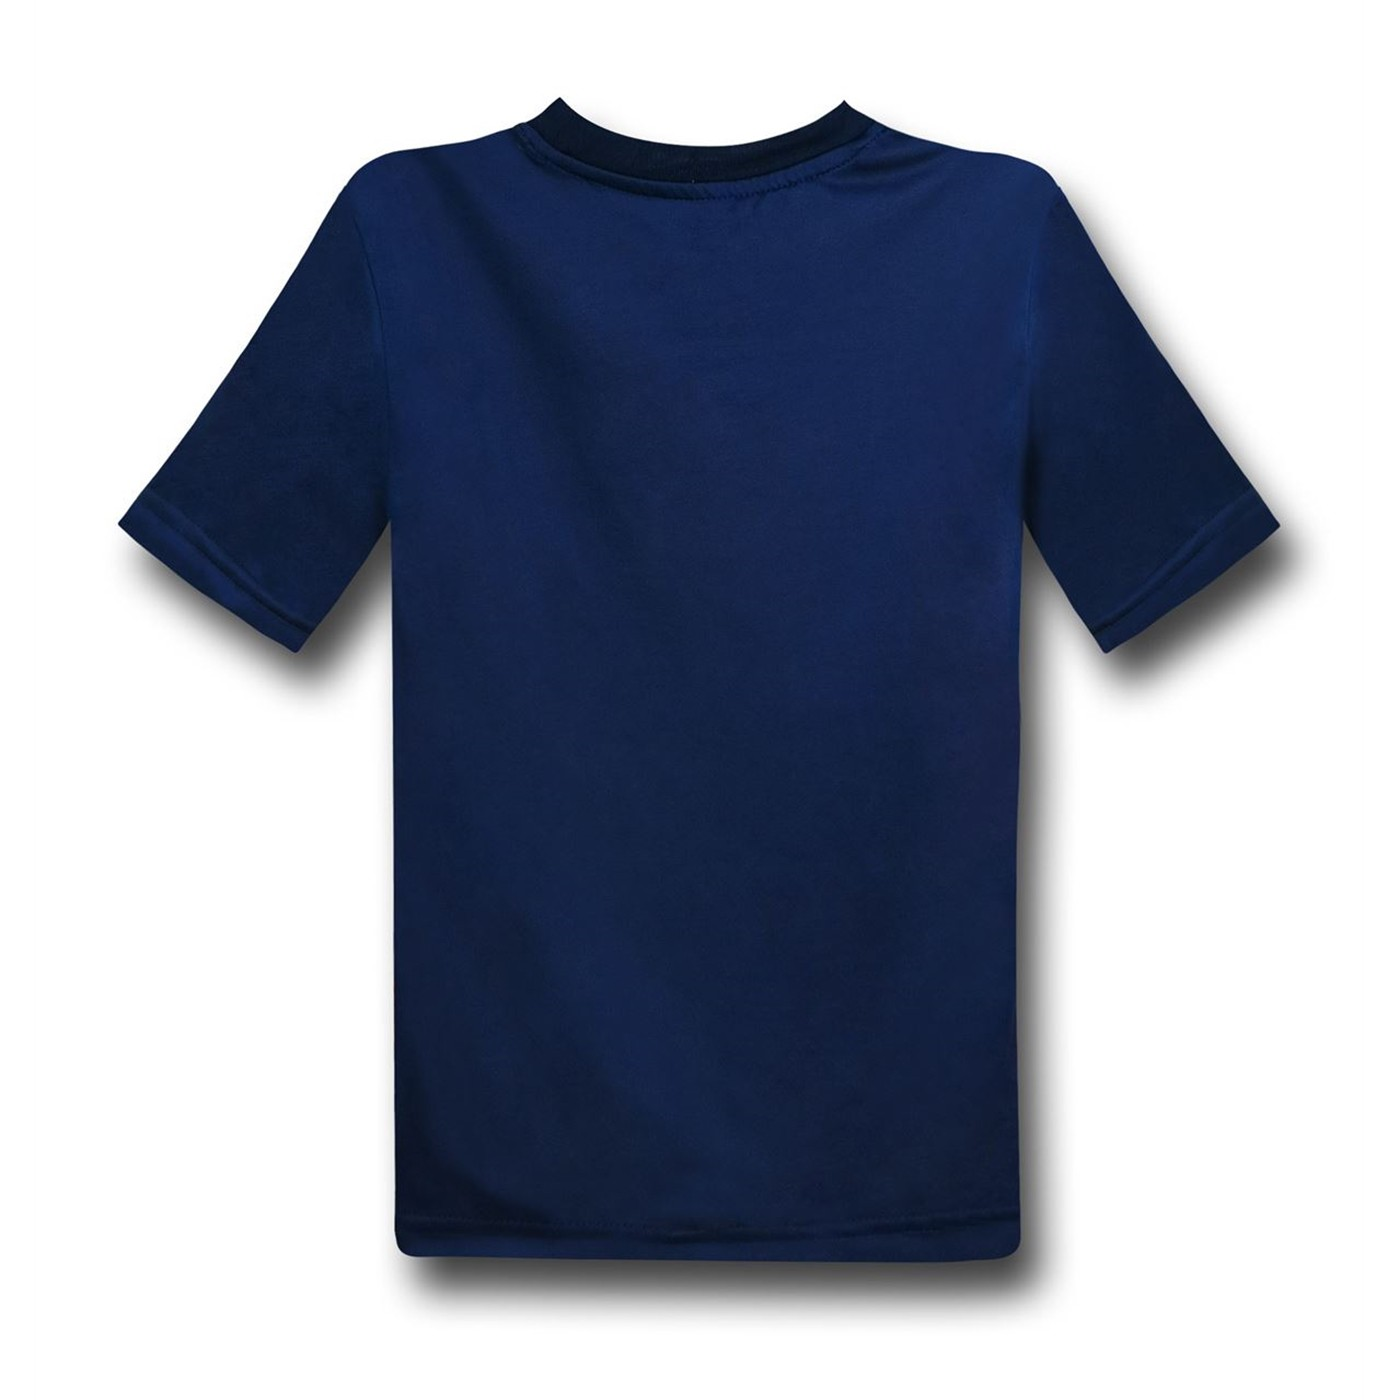 Captain America Kids Freedom Shield Cut & Sew T-Shirt